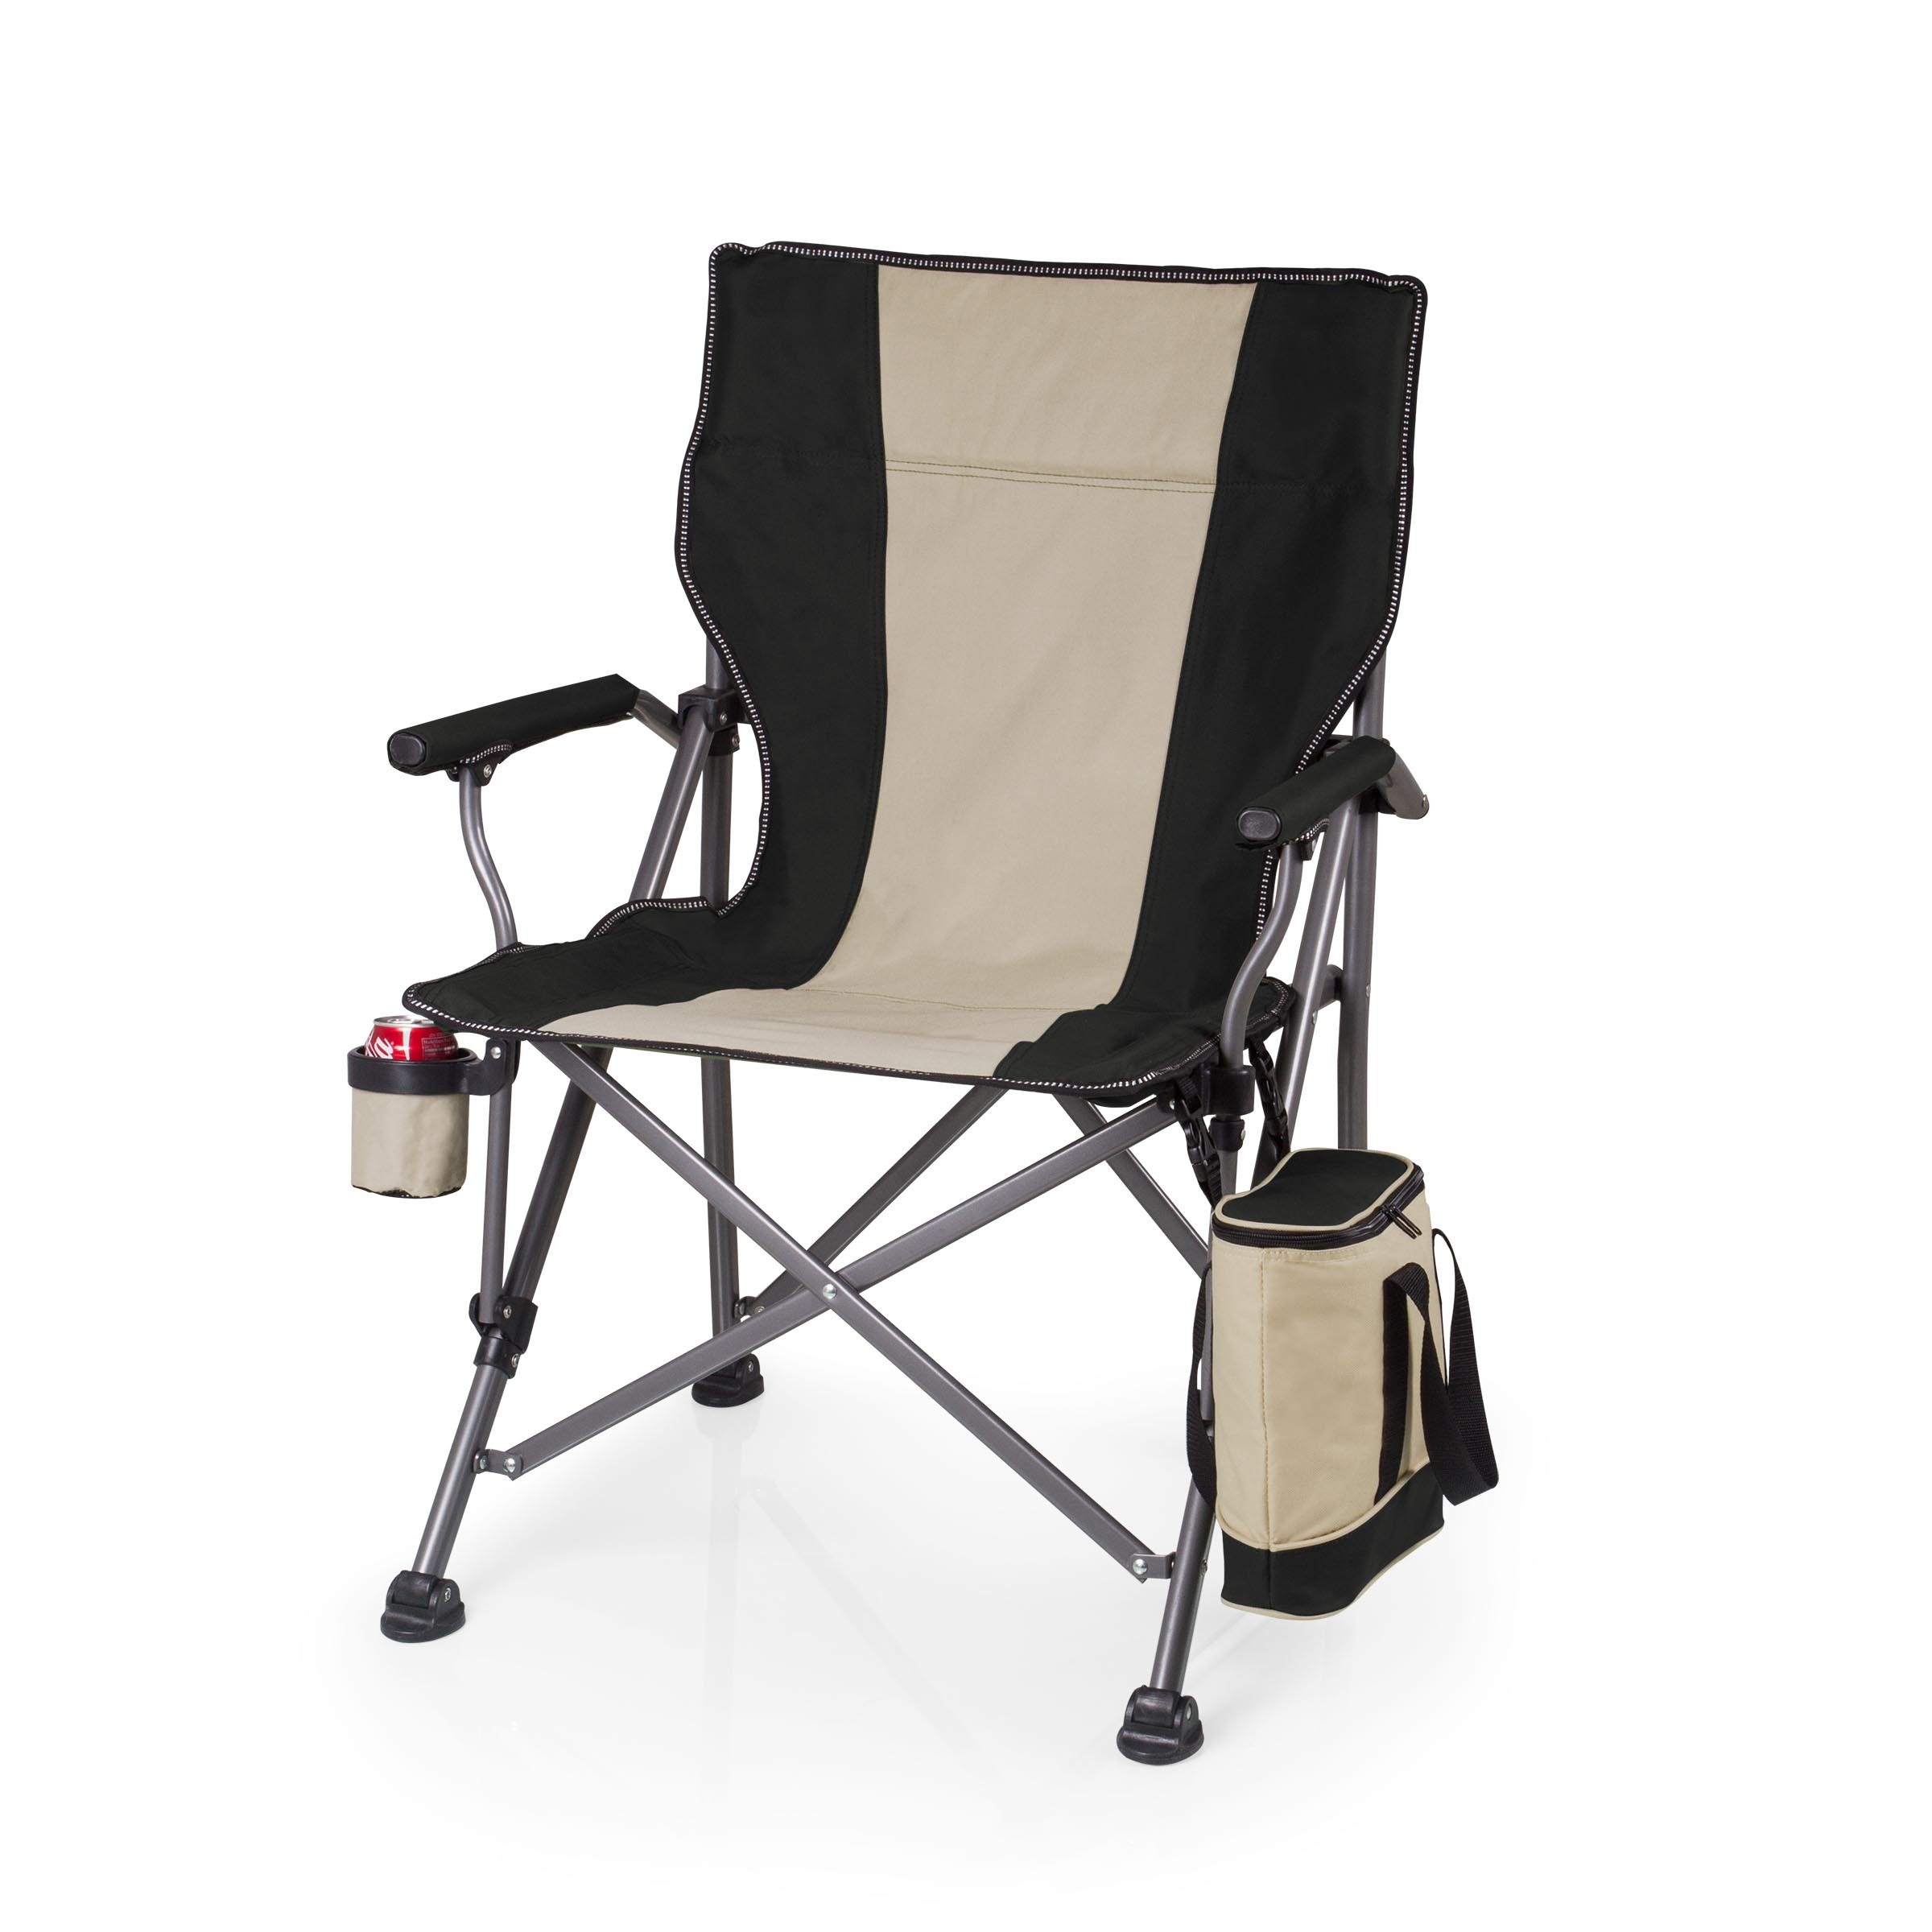 Outlander Camp Chair by Picnic Time